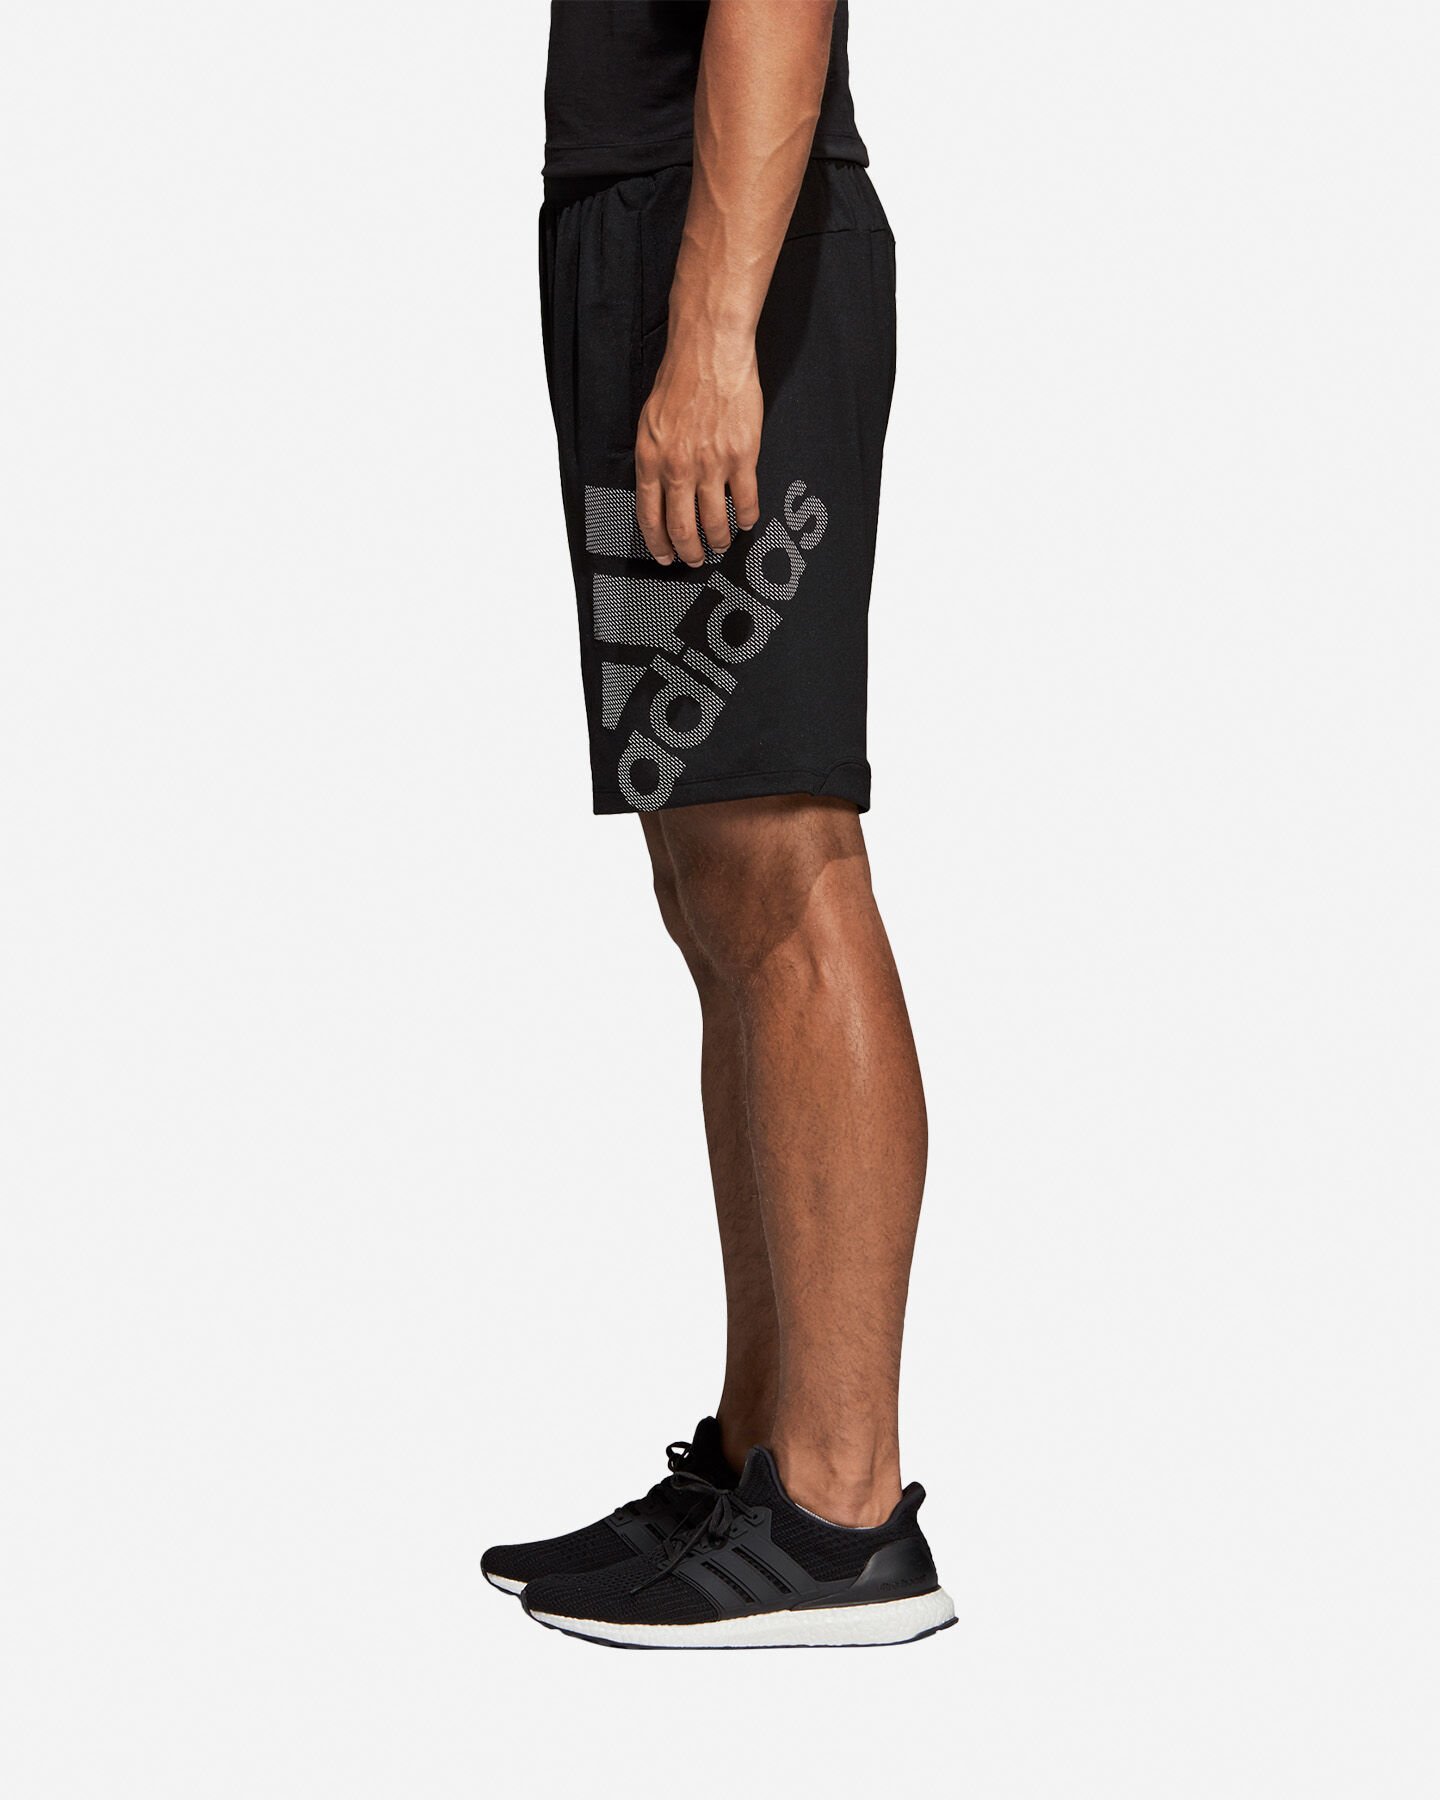 Pantalone training ADIDAS 4KRFT SPORT GRAPHIC BADGE OF SPORT M S2020483 scatto 3